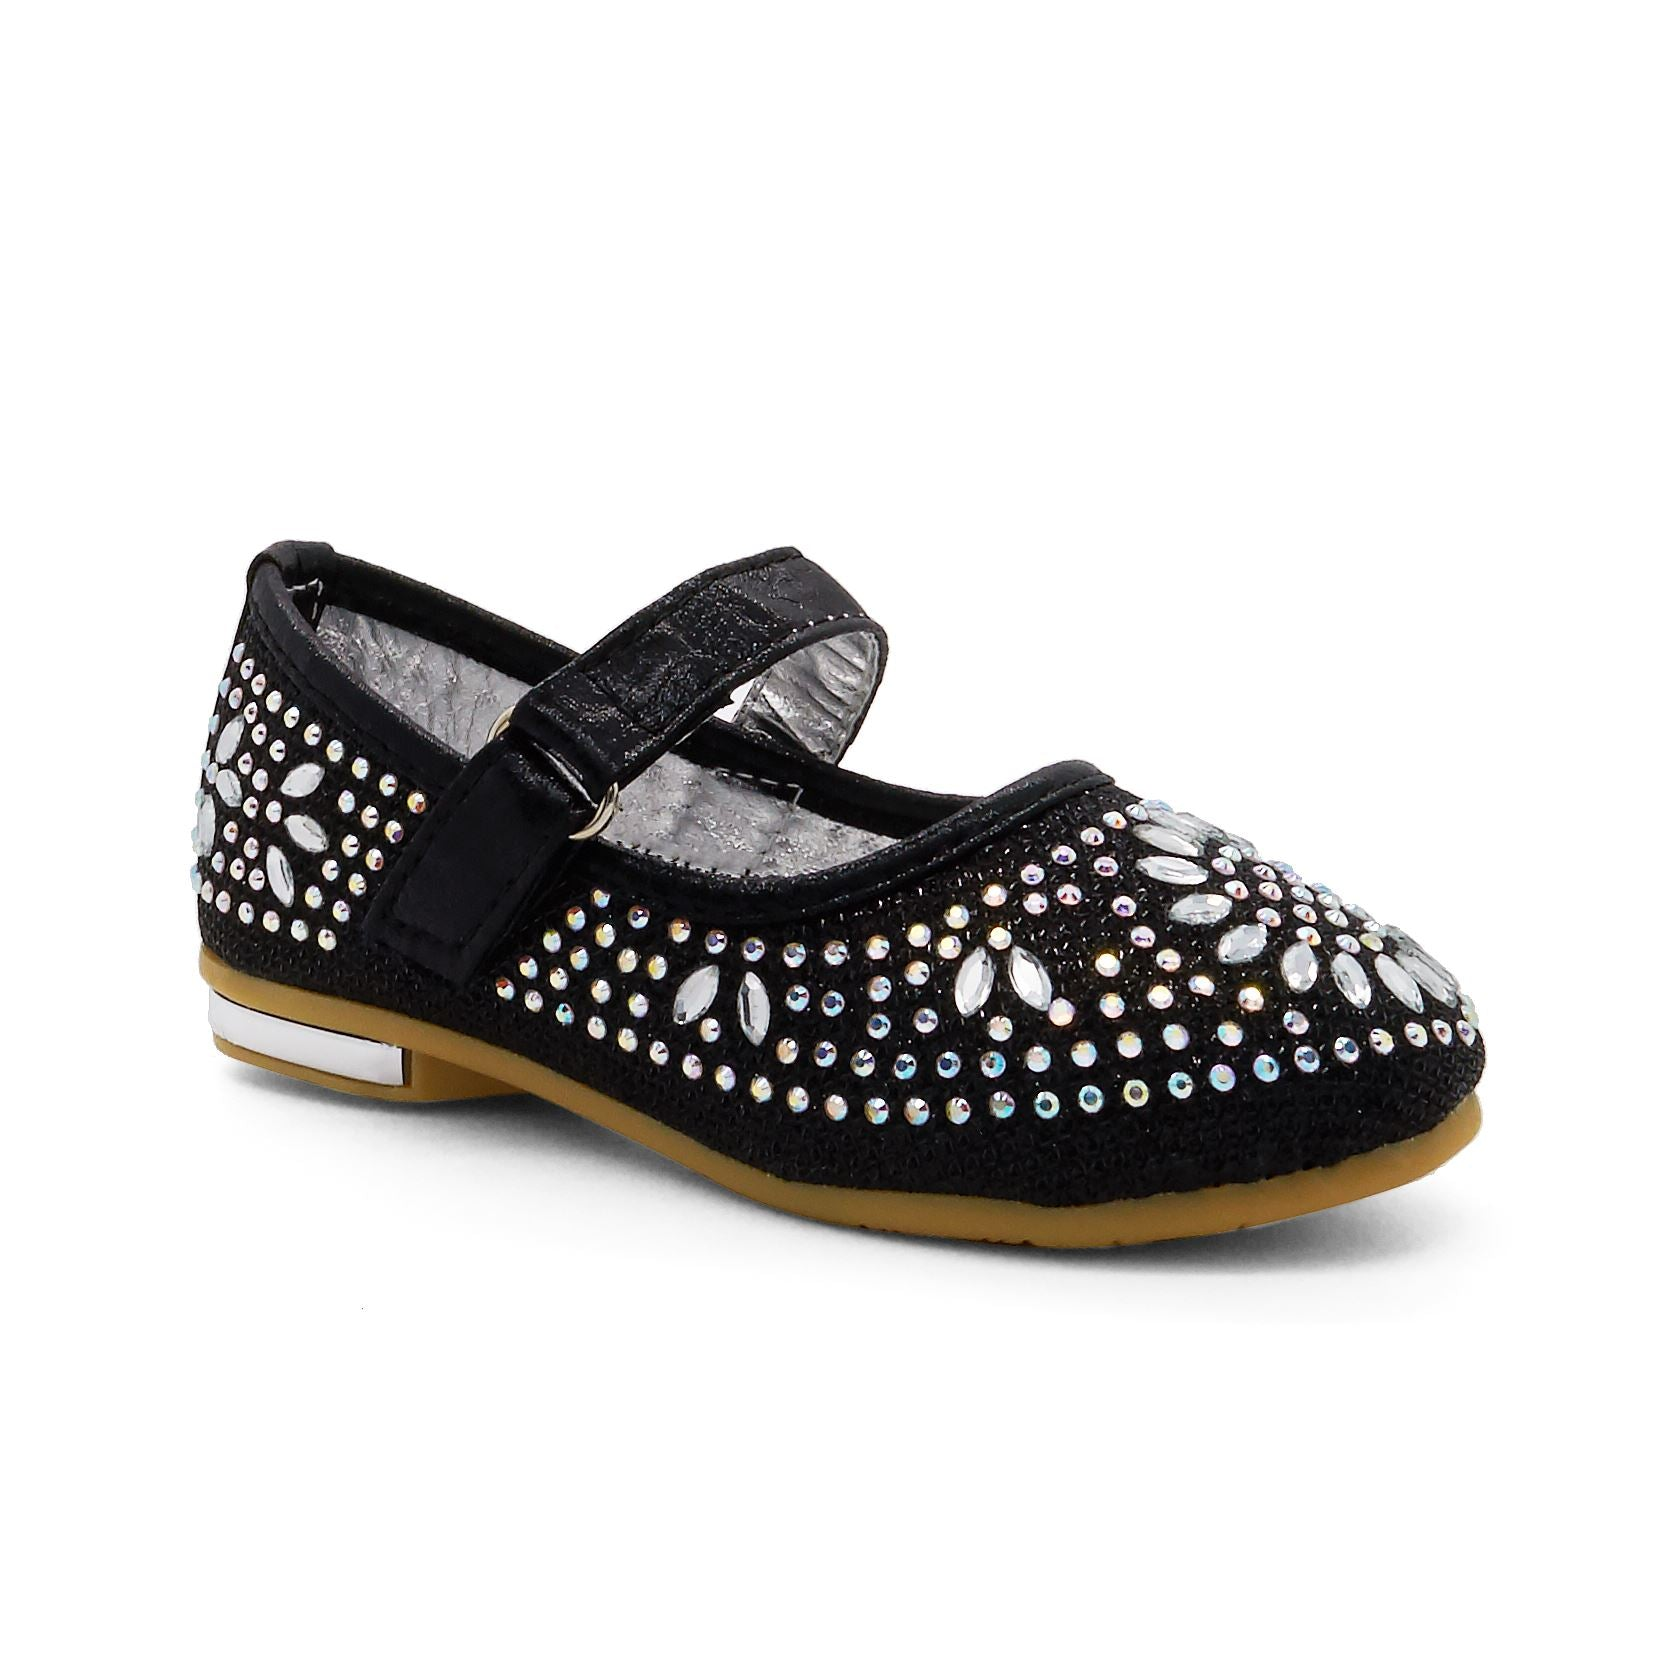 Black Floral Embellished Mary Janes